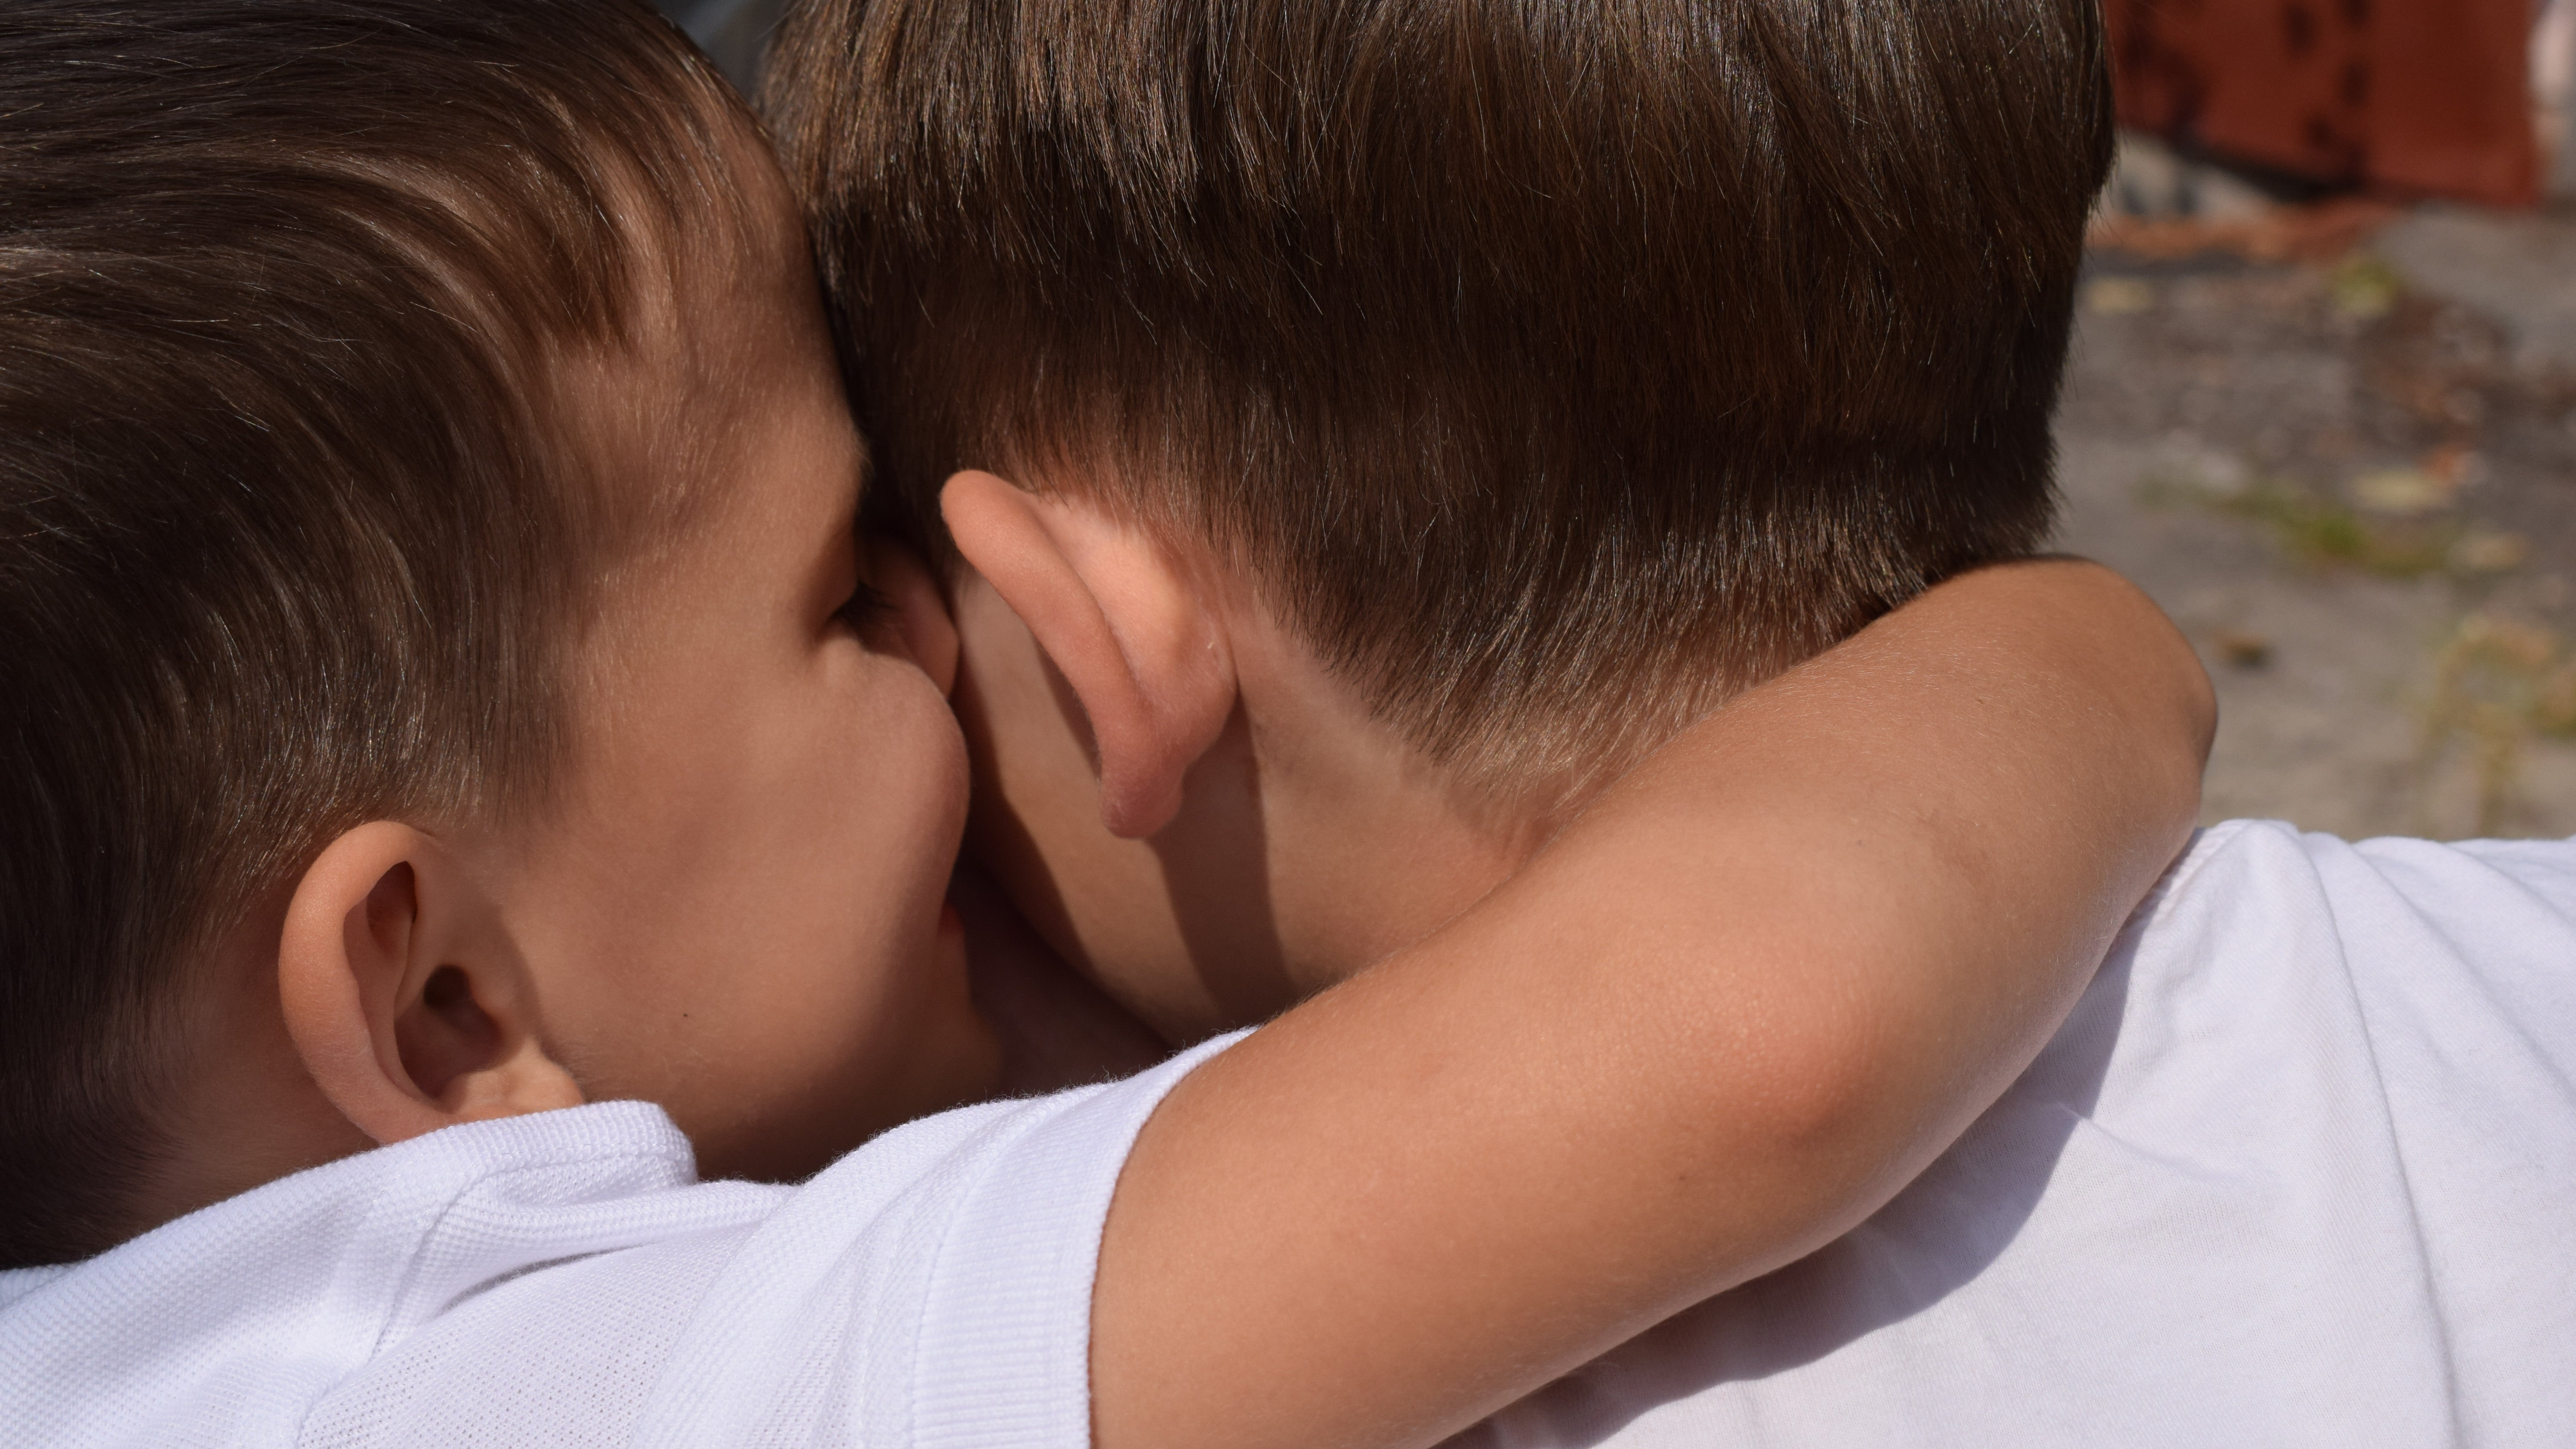 When Your Kid Is Friends With The 'Bad Kid,' Should You Intervene?